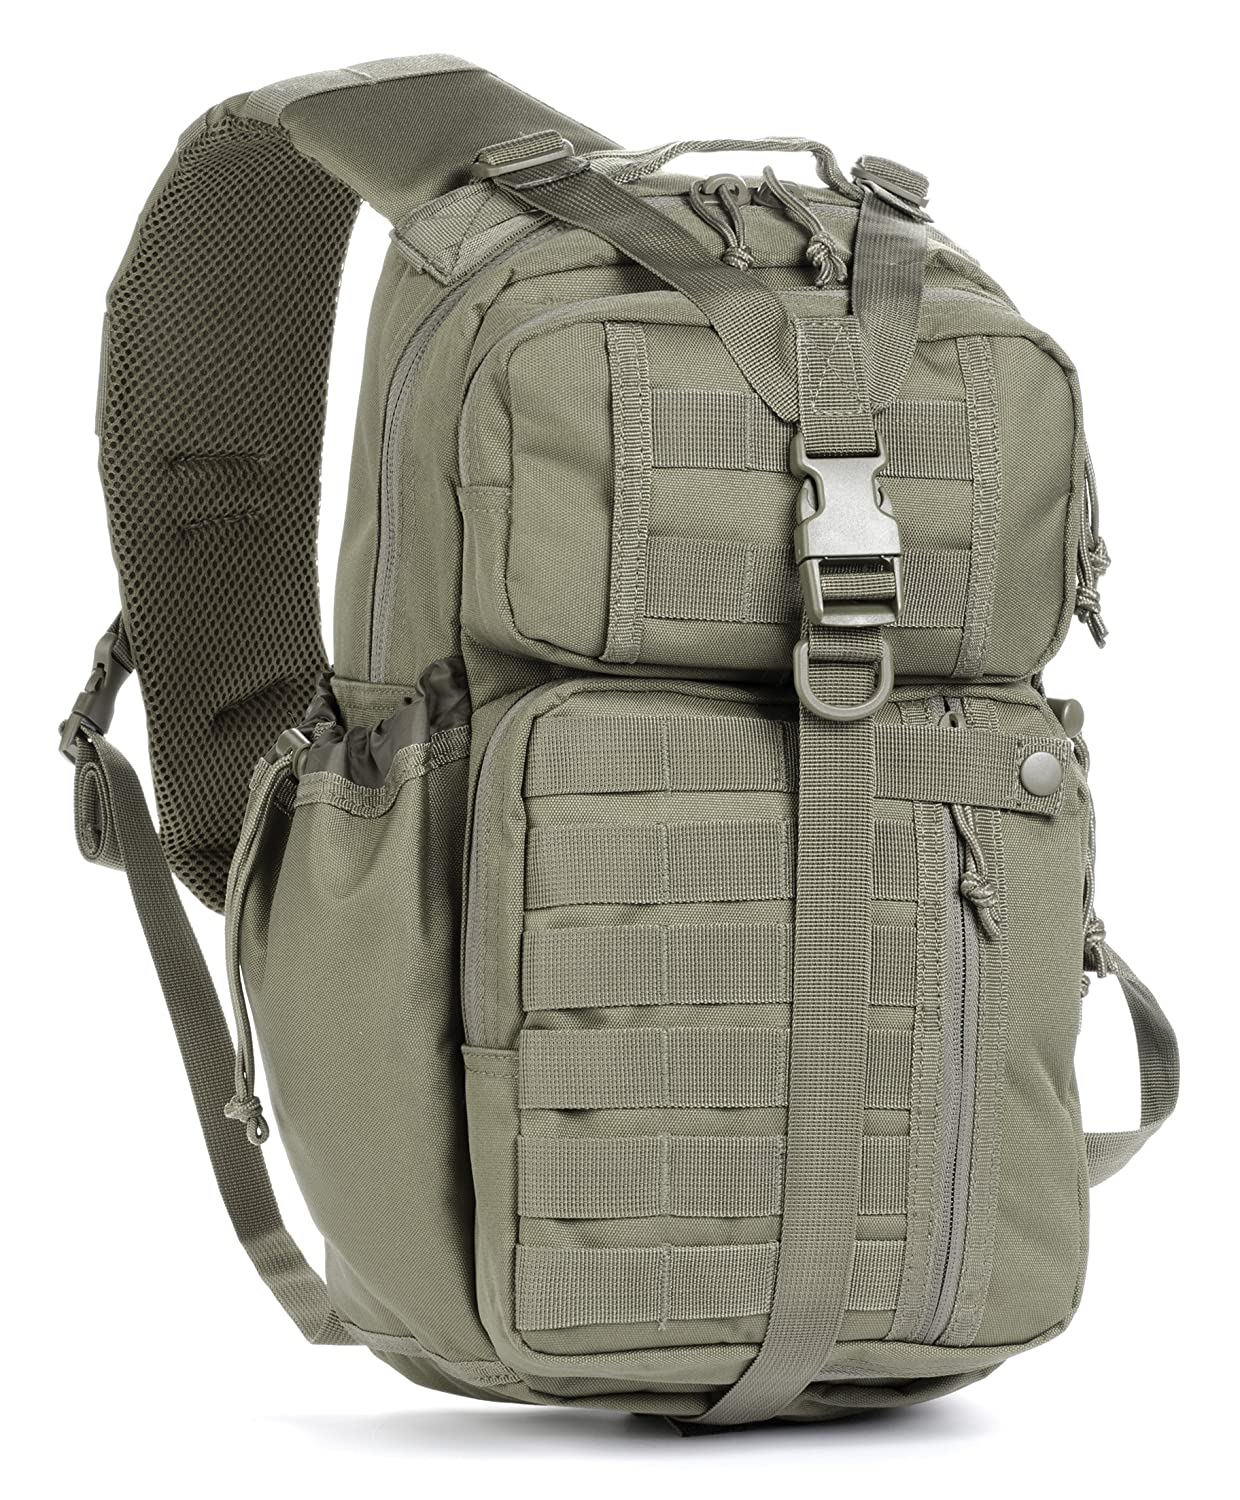 Olive Drab Red Rock Outdoor Gear Rambler Sling Pack